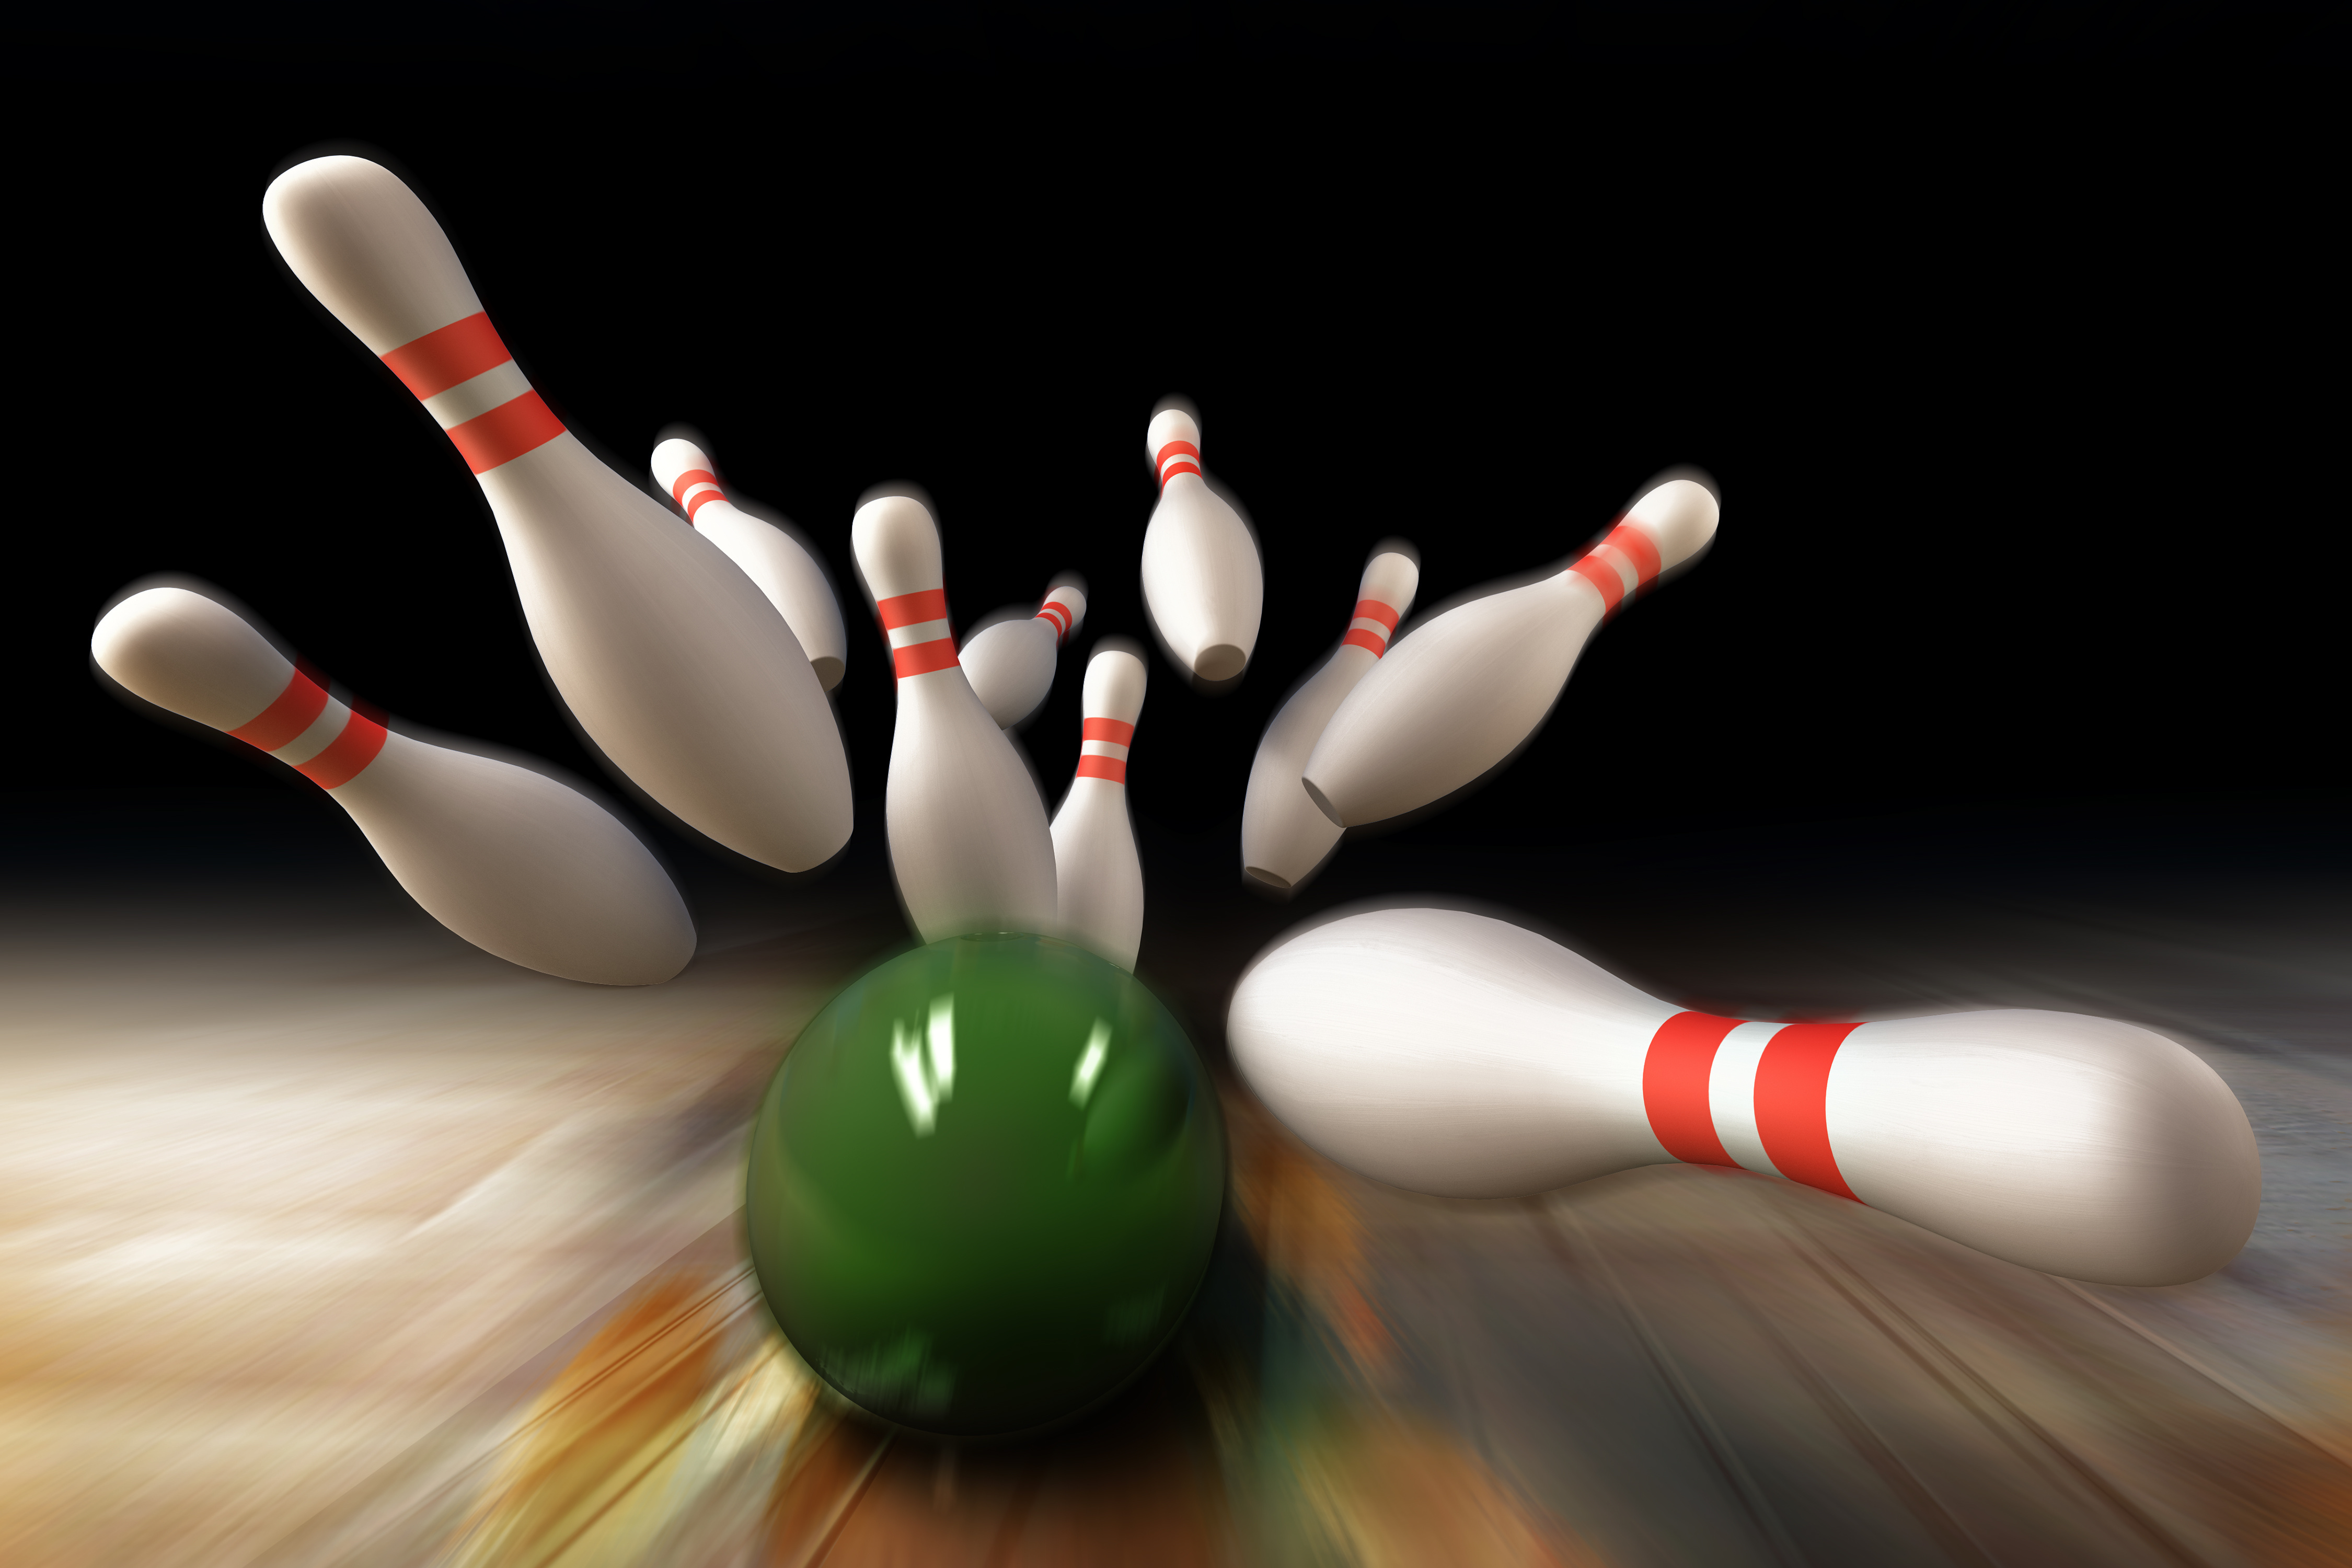 Bowling Images